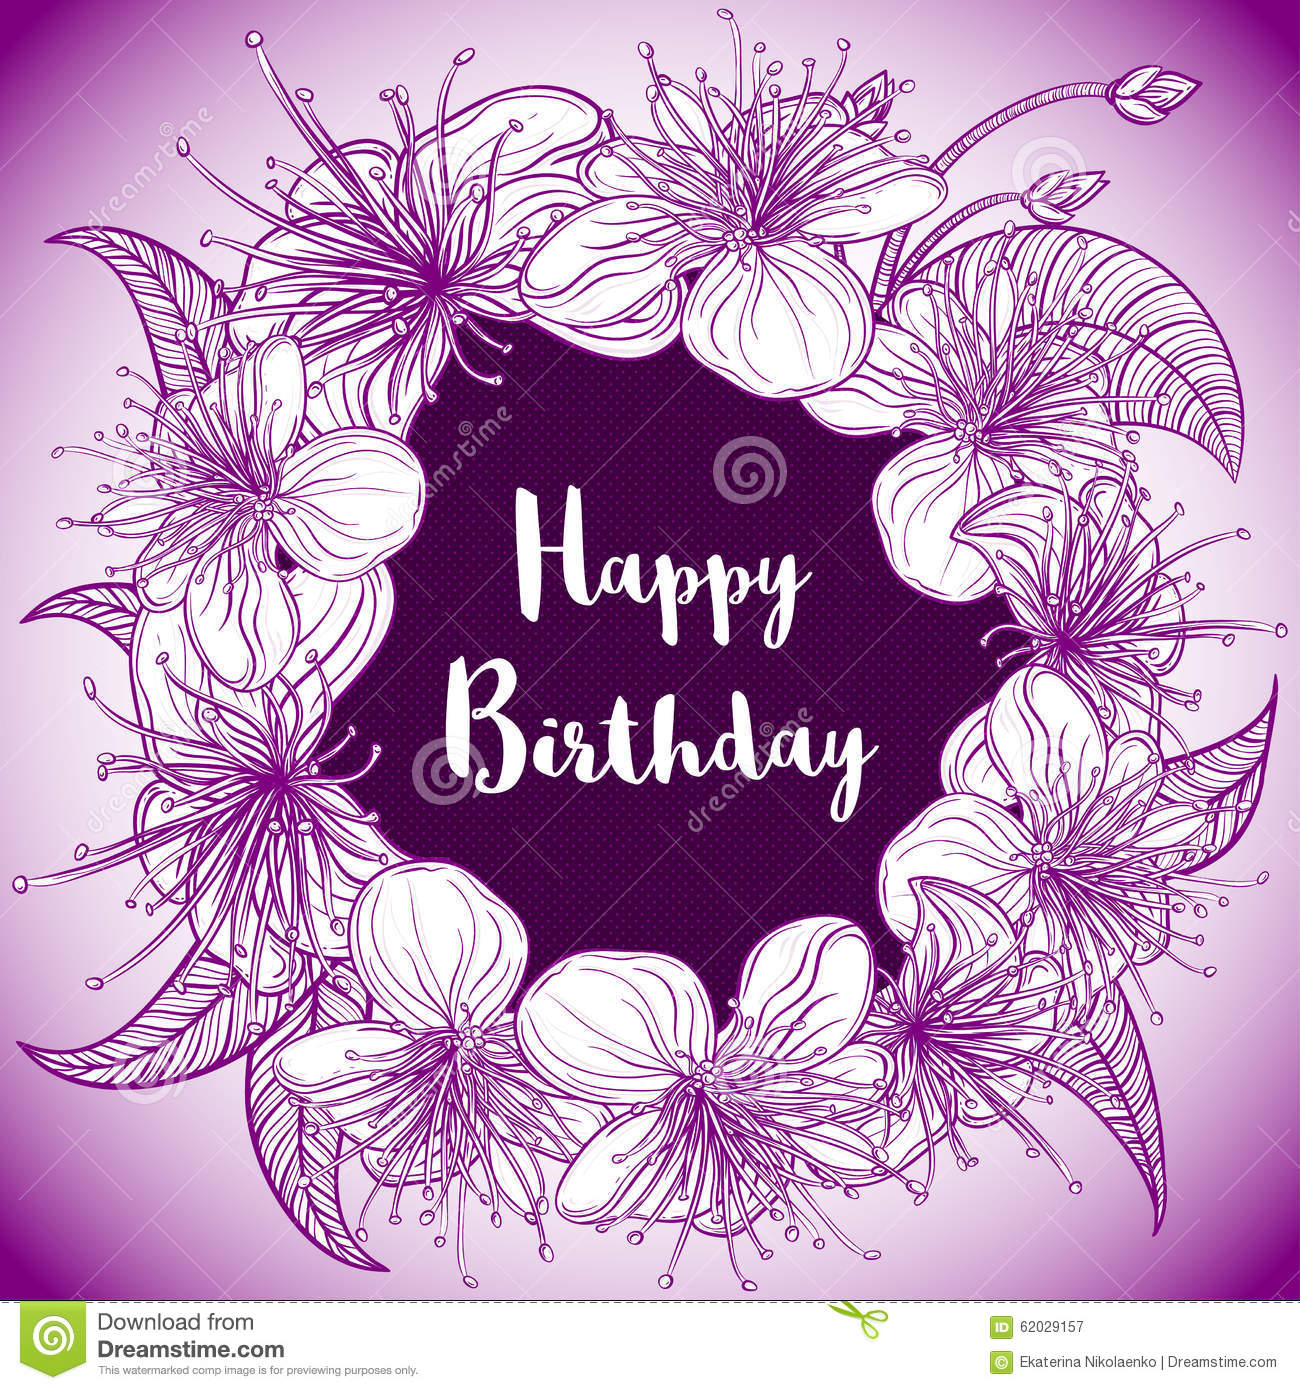 Happy birthday card with wreath of exotic flowers and leaves birthday card exotic happy illustration purple dhlflorist Gallery